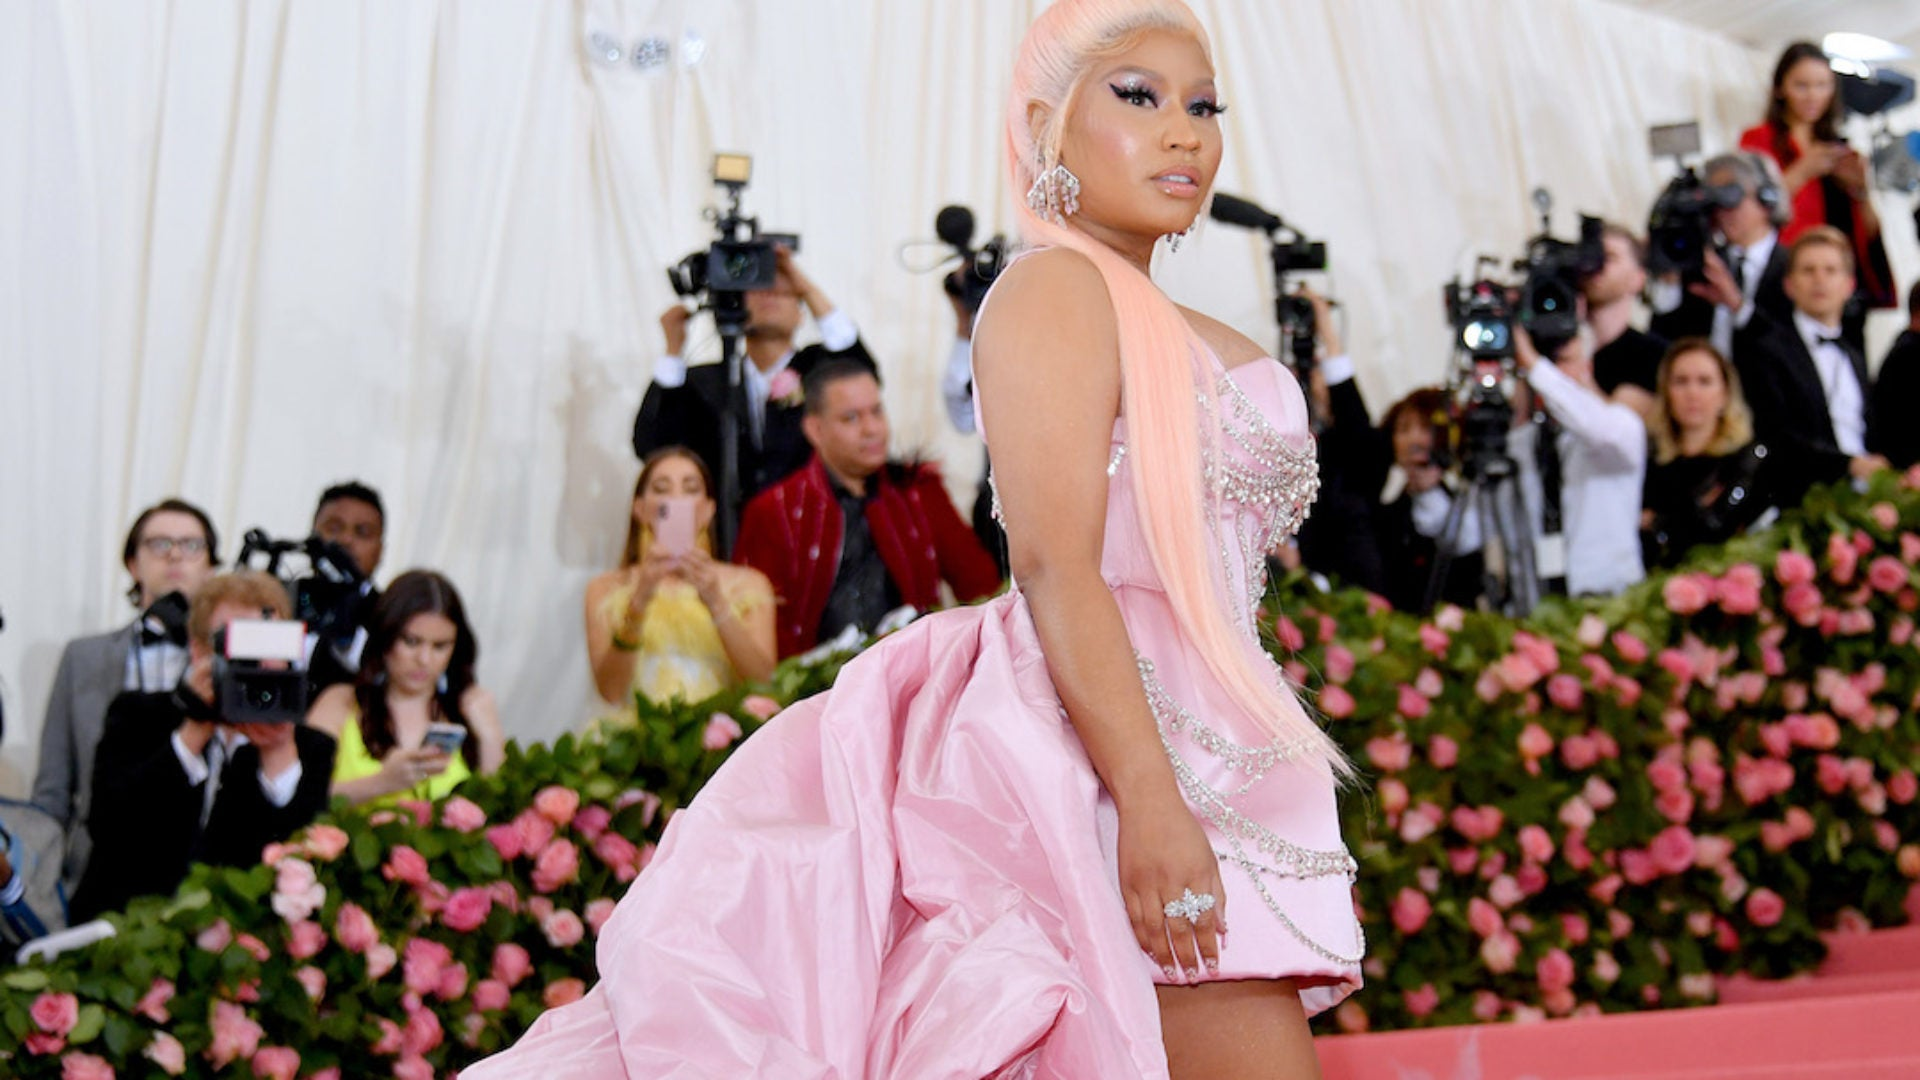 Nicki Minaj says she's retiring from music to have a family